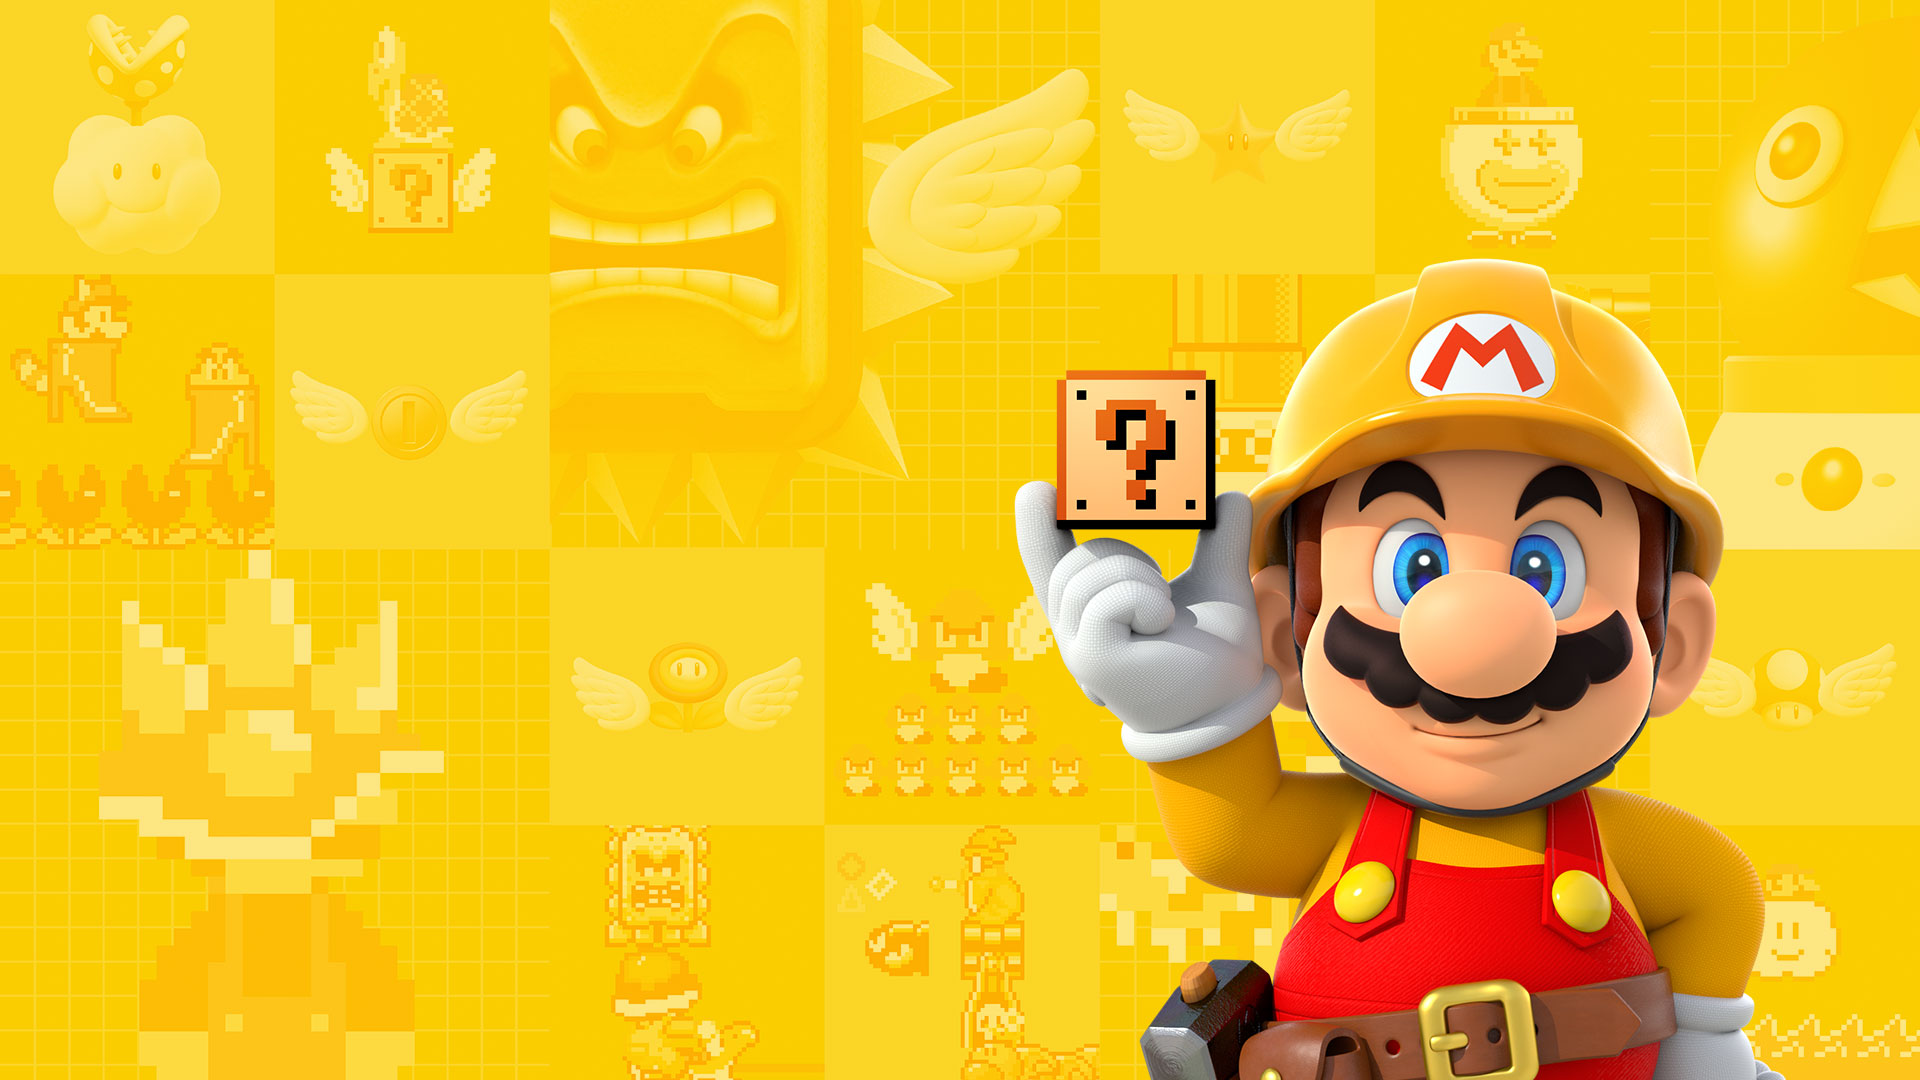 Papel Parede Mario ~ Super Mario Maker Wallpaper Full HD Papel de Parede and Background Image 1920×1080 ID 683906